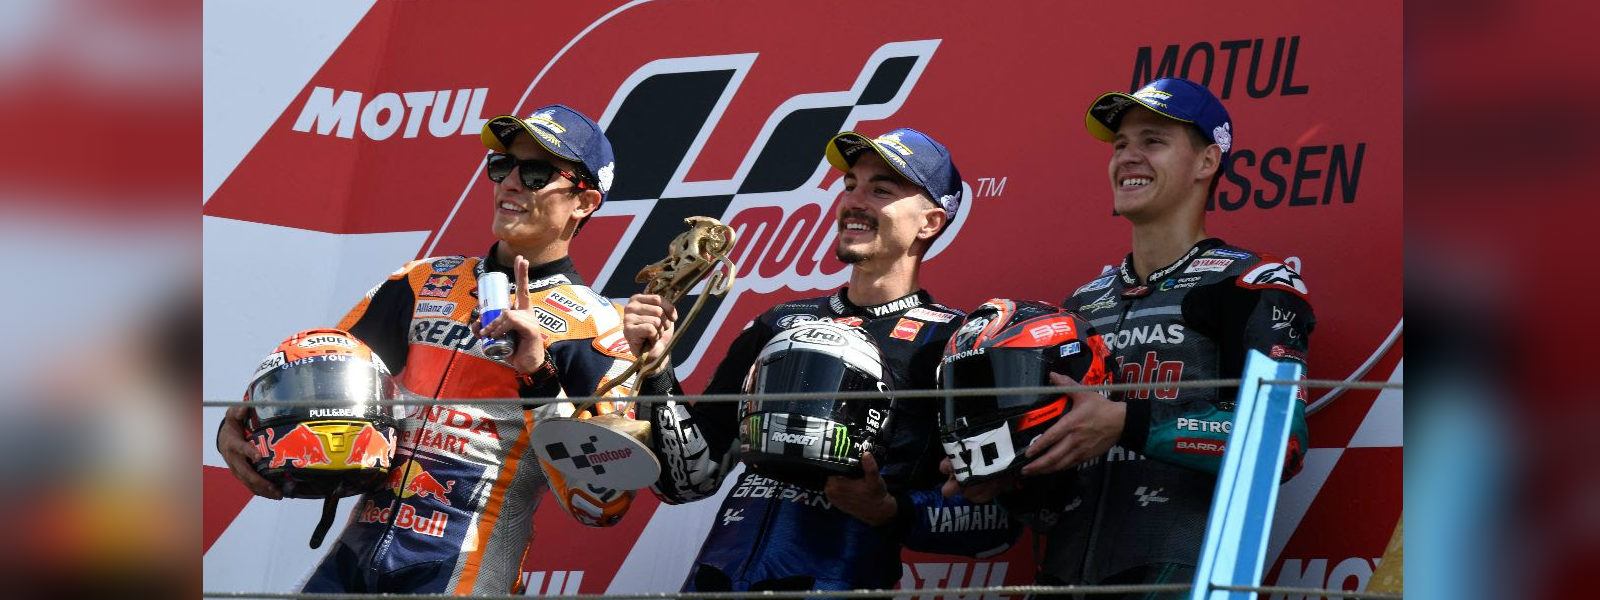 Vinales wins at Assen, Marquez stretches MotoGP lead